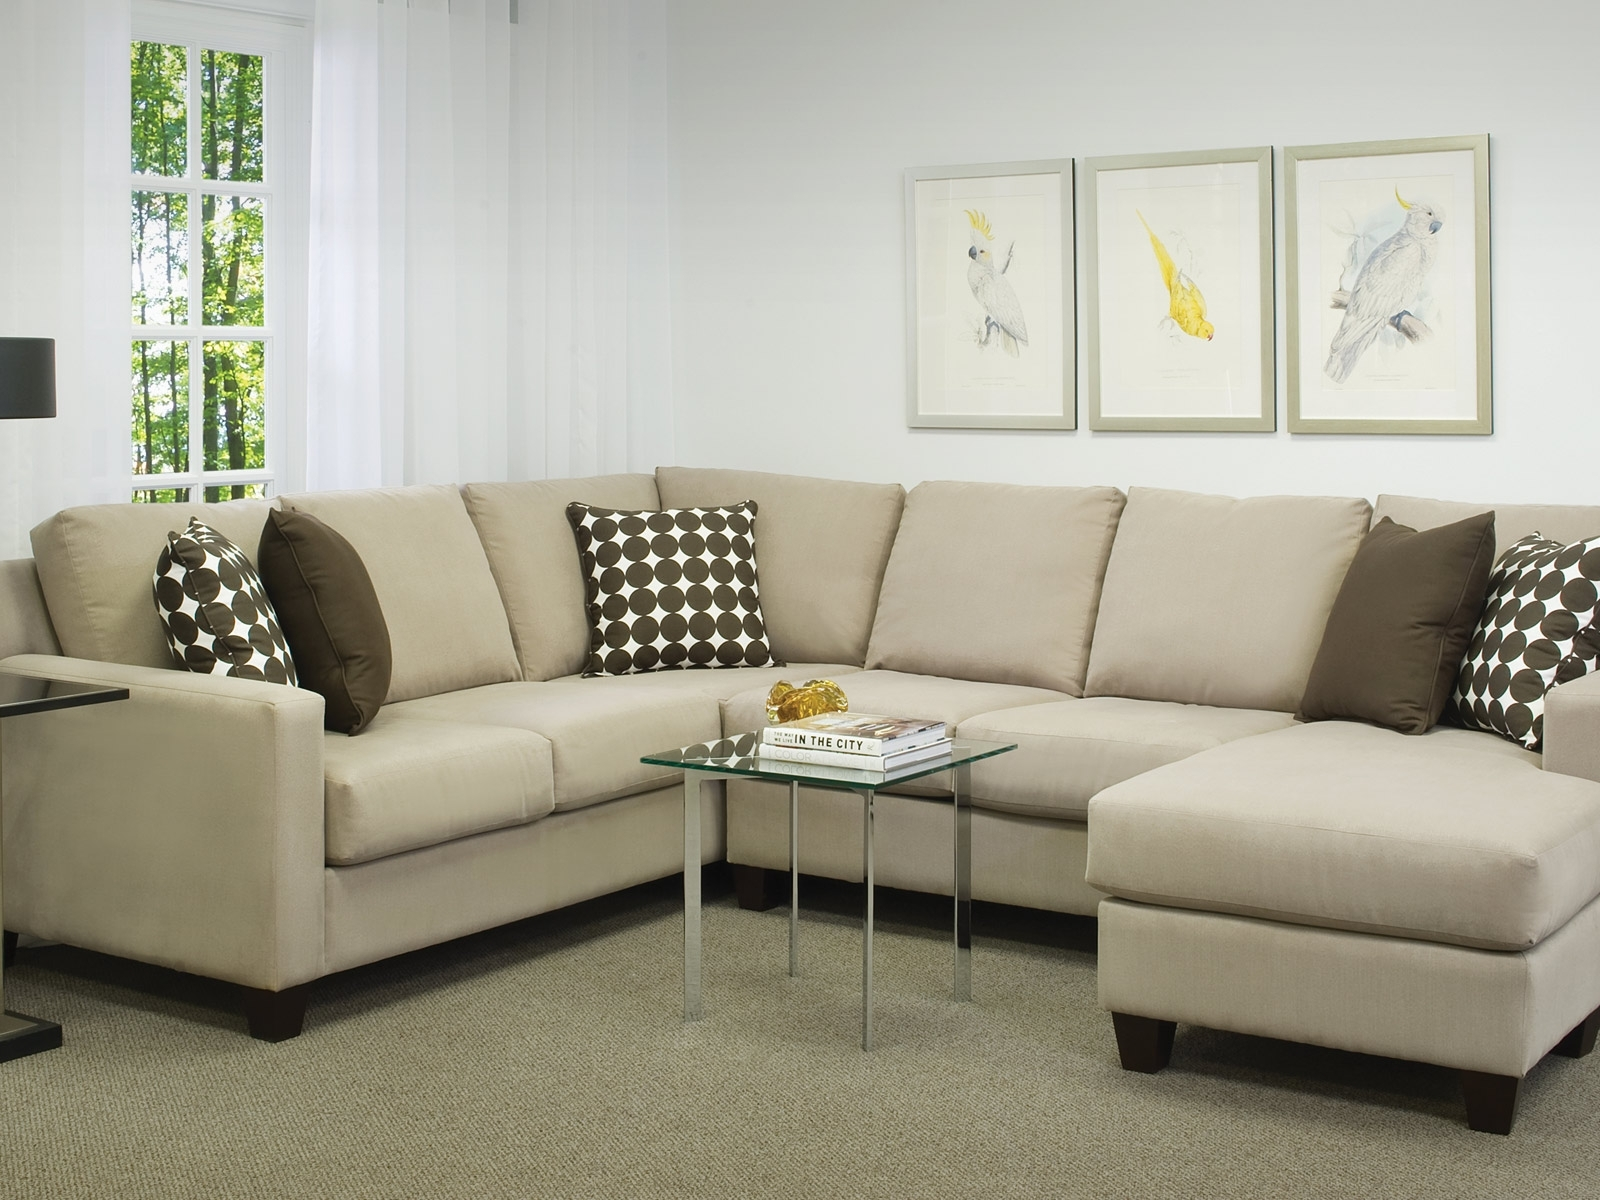 Collections – Manorhouse Furniture – Halifax, Nova Scotia With Regard To Halifax Sectional Sofas (Image 2 of 10)